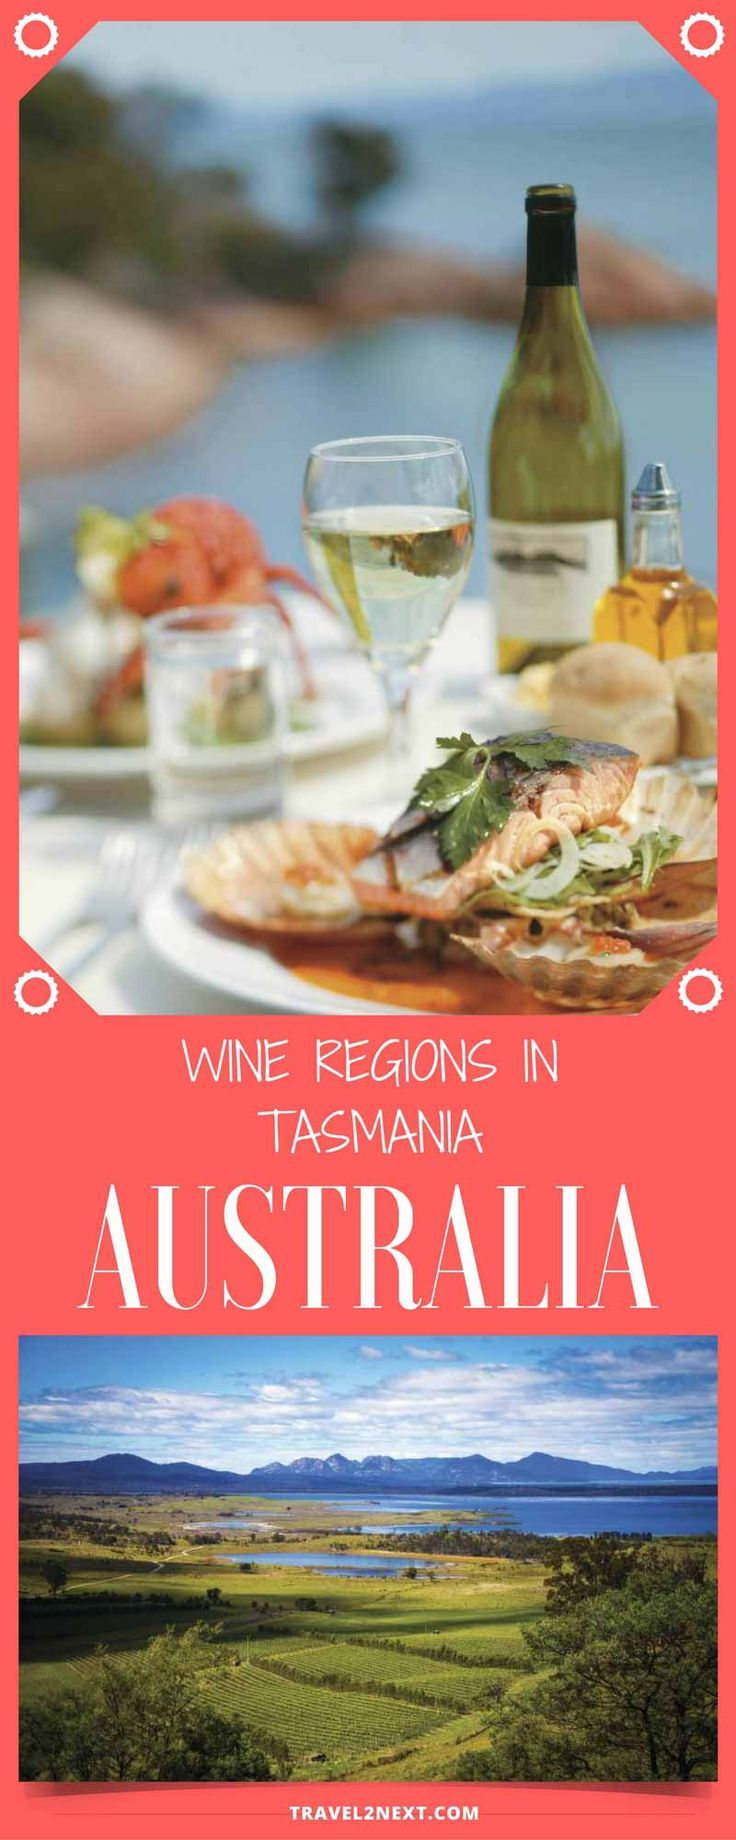 Wine regions in Tasmania – Australia's coolest wine trail.  It's time to explore wine regions in Tasmania along Australia's coolest wine trail.